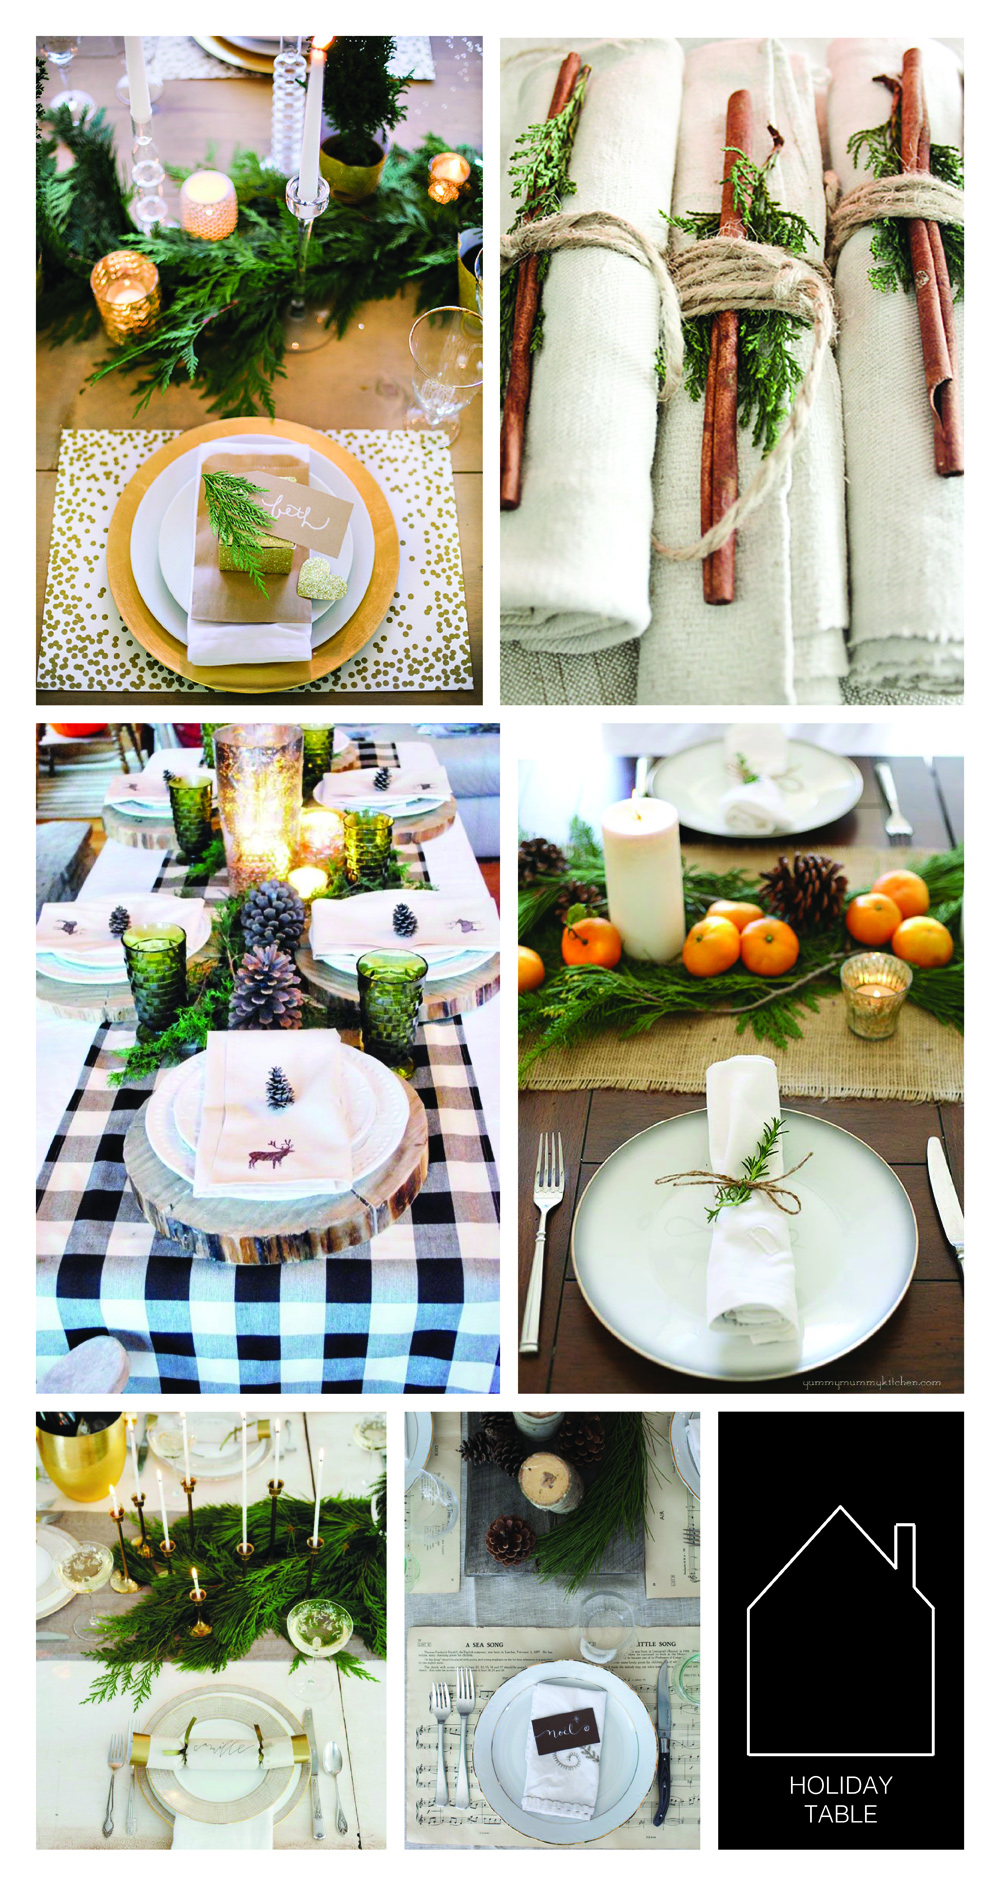 from top left - sparkly table from  Hostess with the Mostess Blog - napkins with cinnamon via  Paper & Lace - buffalo check table source unknown - clementine table setting via  Yummy Mummy Kitchen  - winter table via  Glitter Guide  by  Camille Styles - musical table by  Simple Bites